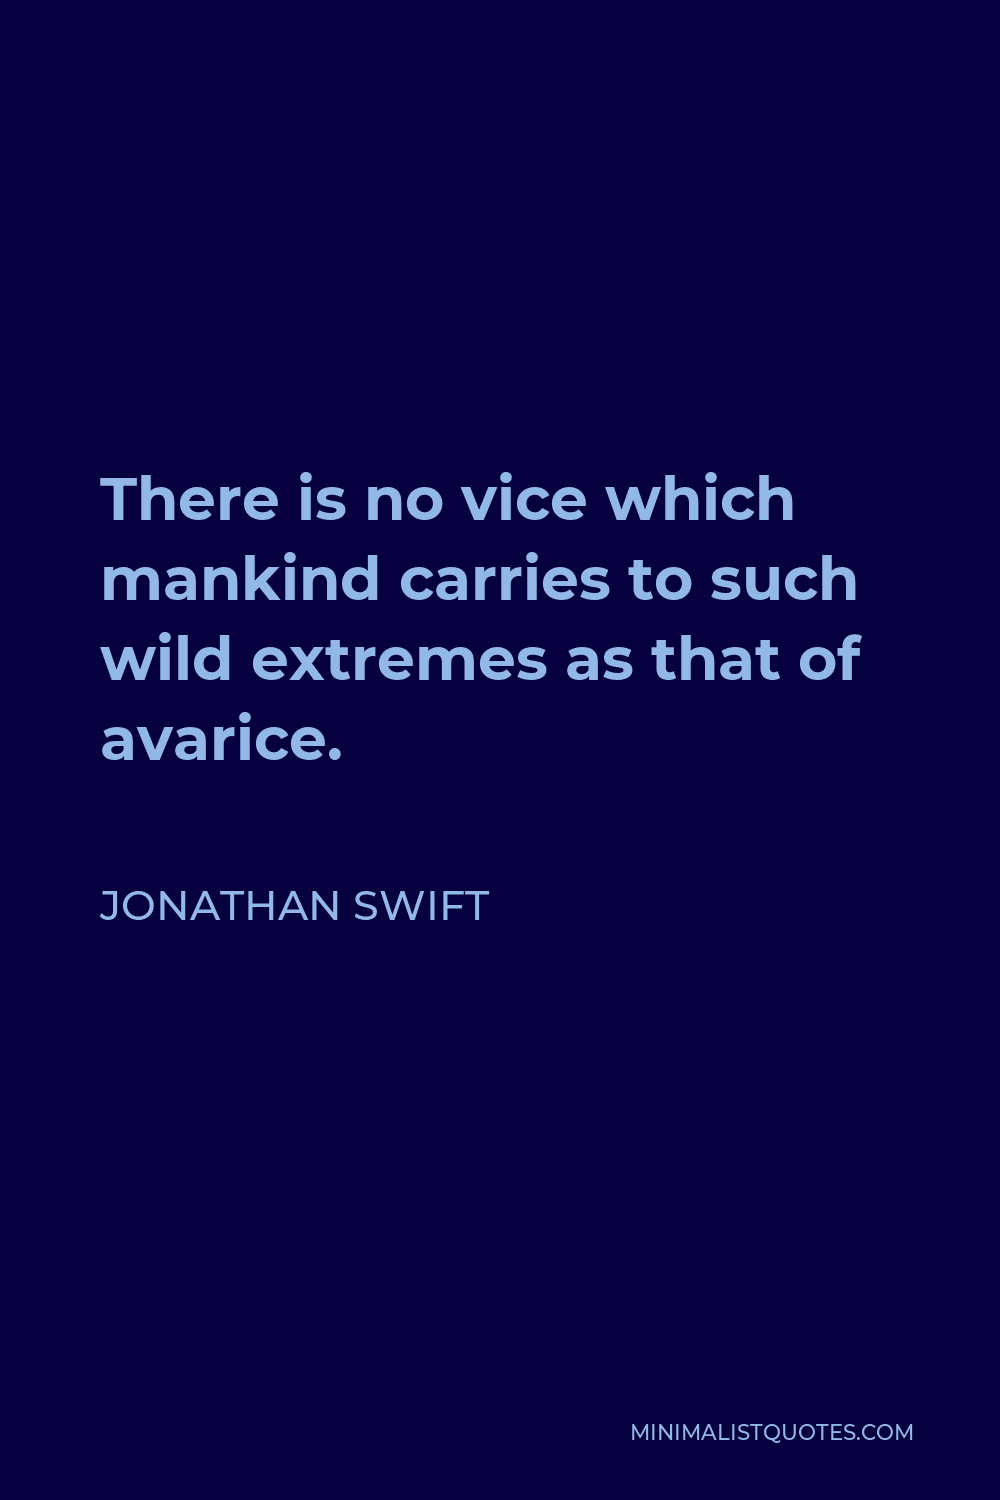 Jonathan Swift Quote - There is no vice which mankind carries to such wild extremes as that of avarice.